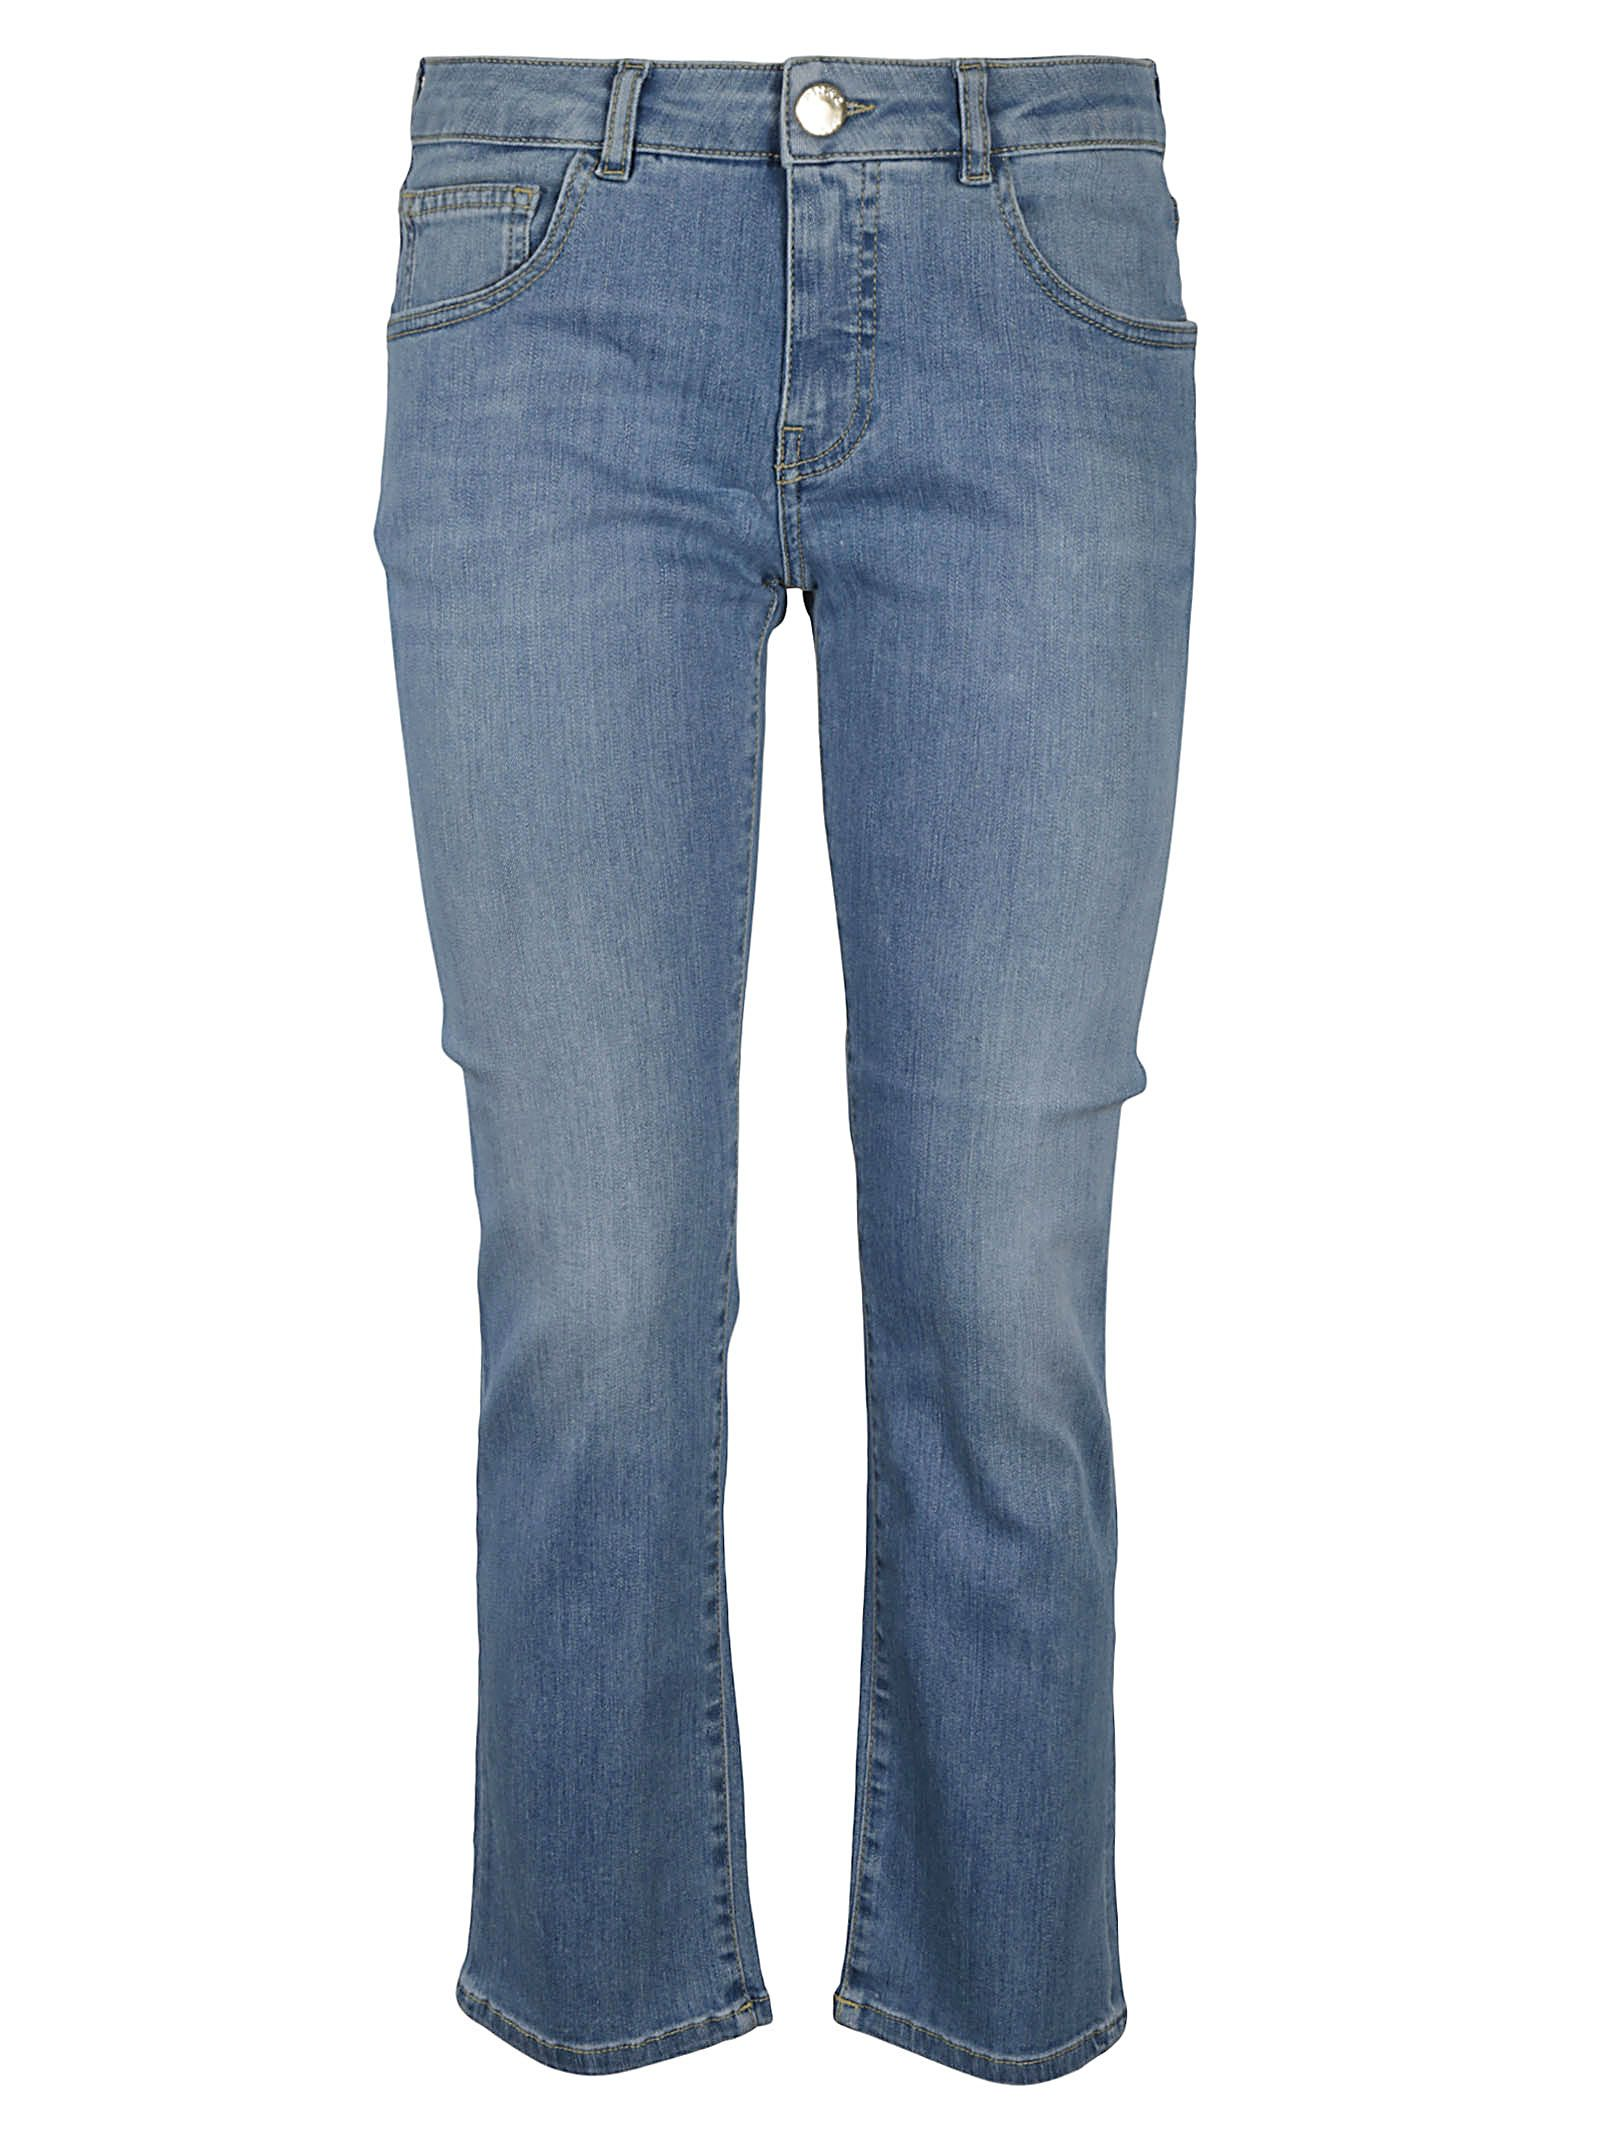 Pinko Cottons PINKO WOMEN'S 1J10NJY6VNF14 BLUE OTHER MATERIALS JEANS